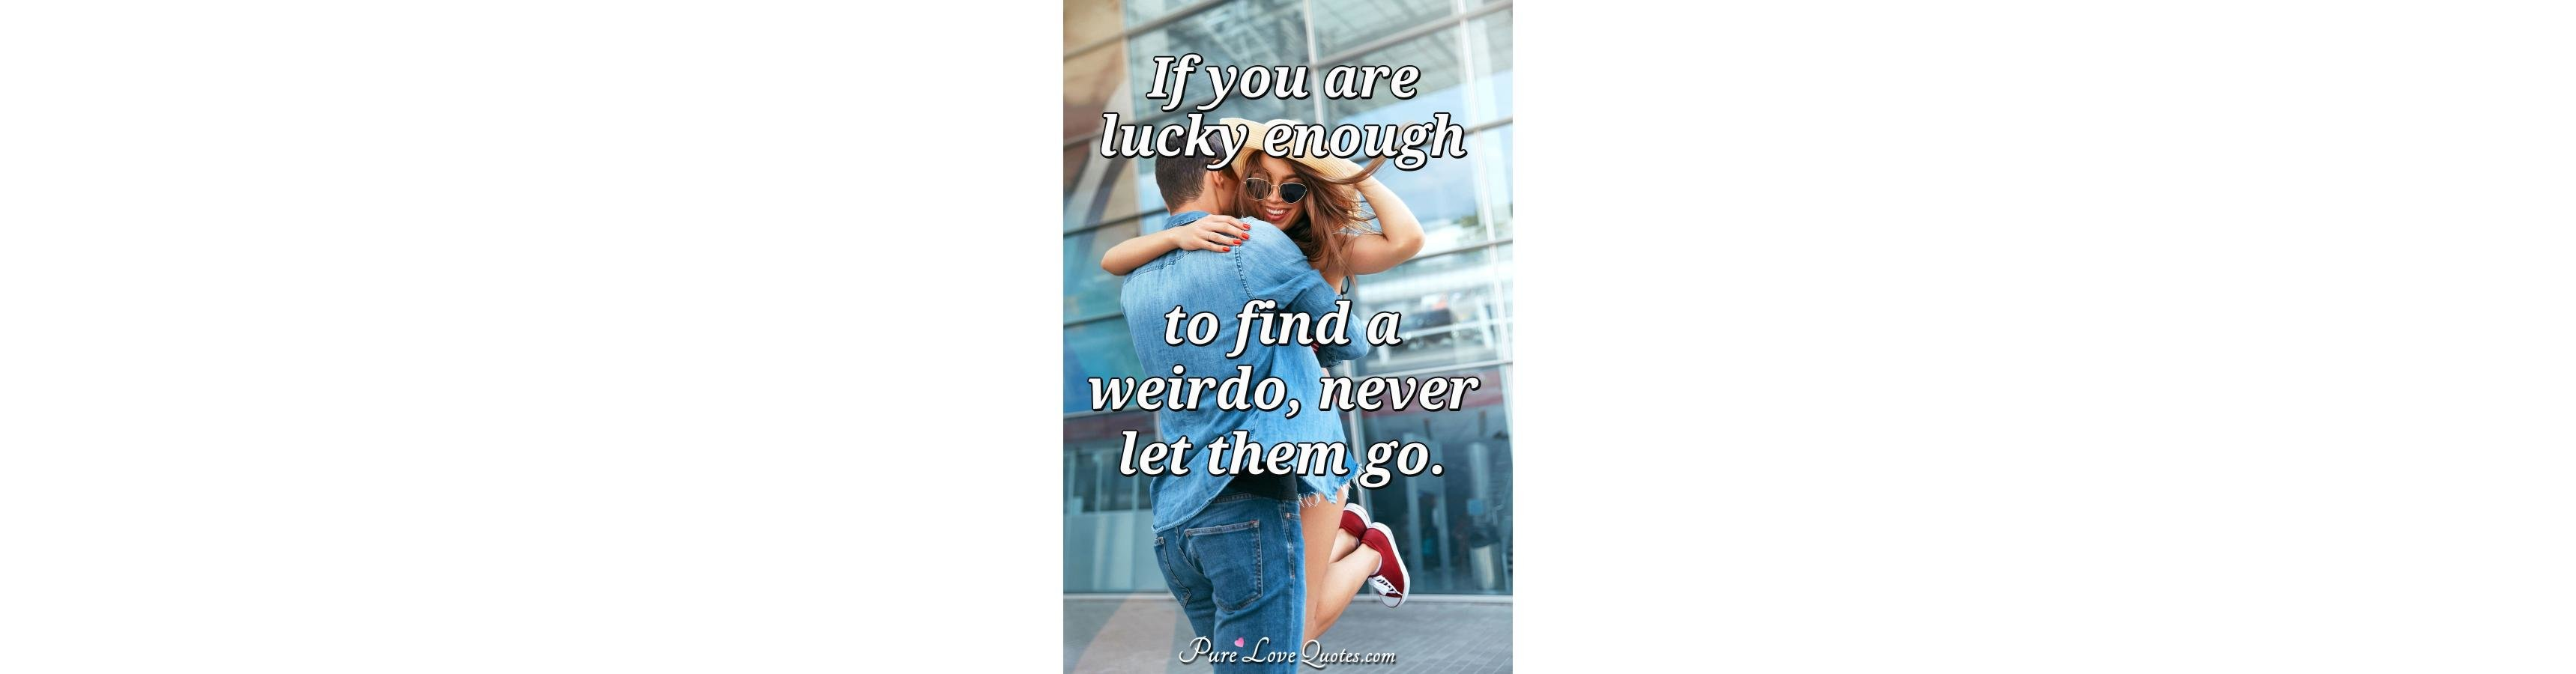 Love Life Dreams If You Re Lucky Enough To Find Someone: If You Are Lucky Enough To Find A Weirdo, Never Let Them